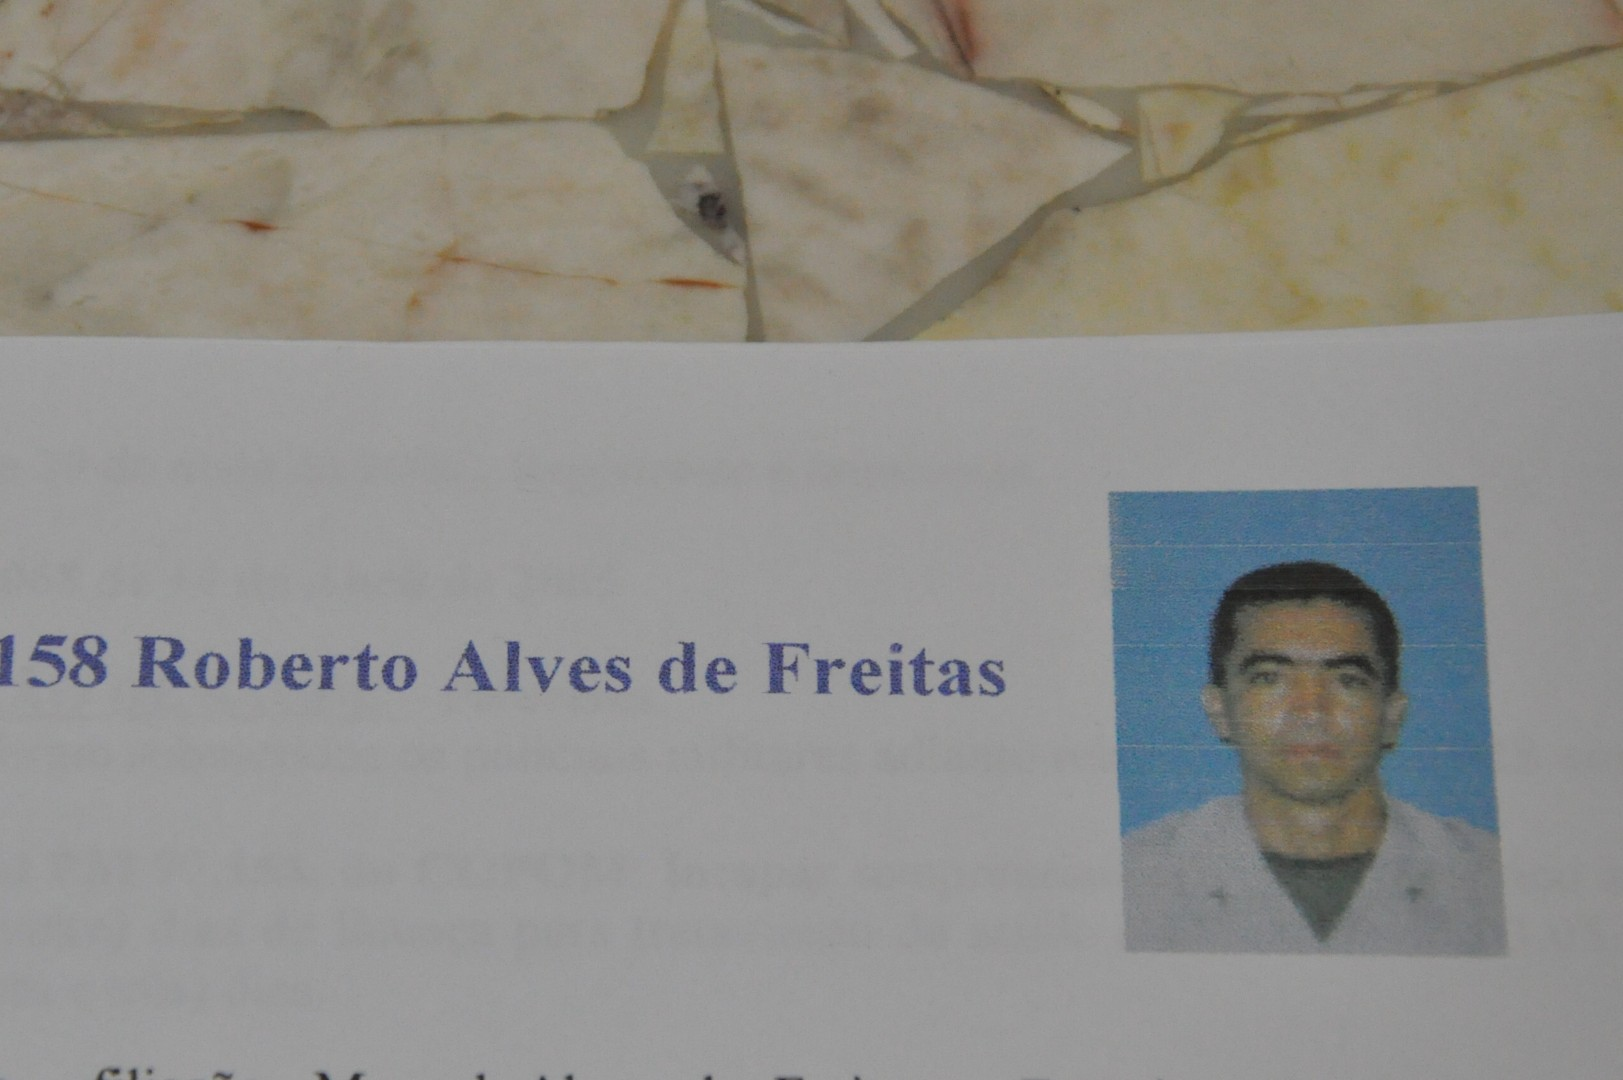 O soldado Roberto Alves de Freitas foi assassinado na noite do domingo passado